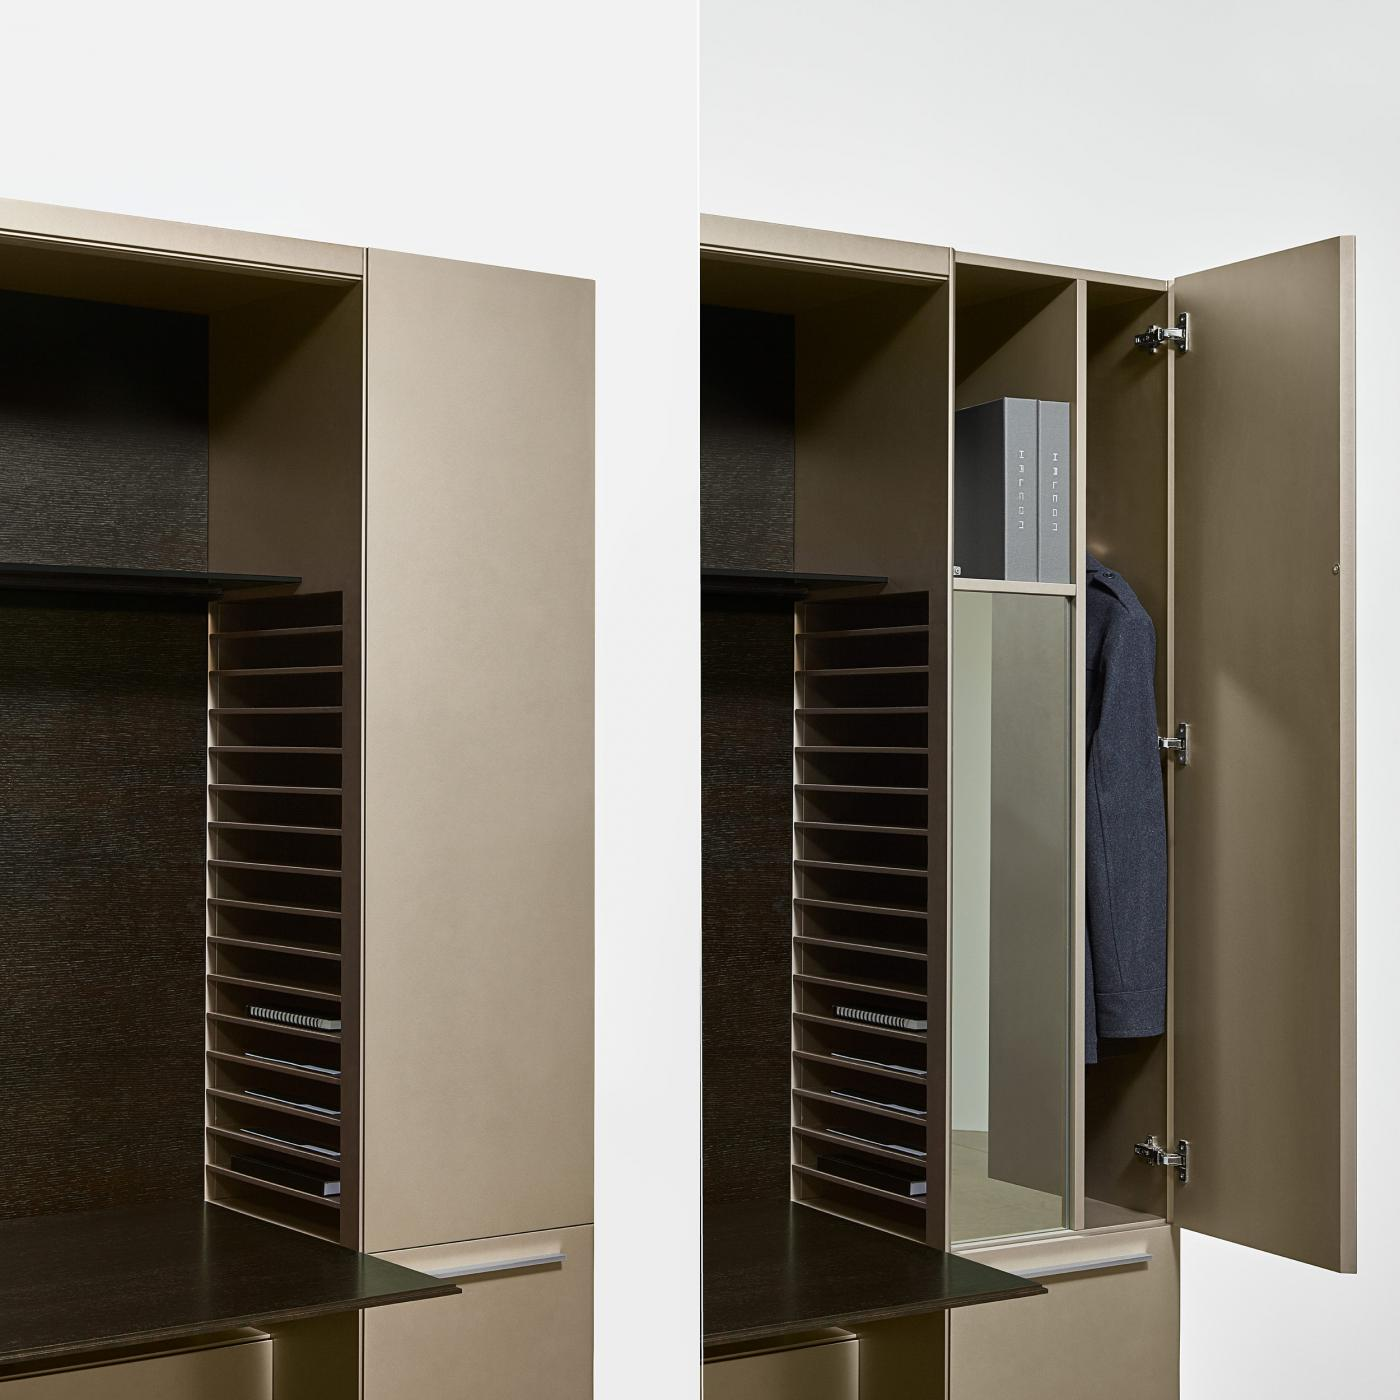 Ultra-efficient storage with discreet project filing, wardrobe, and mirror.